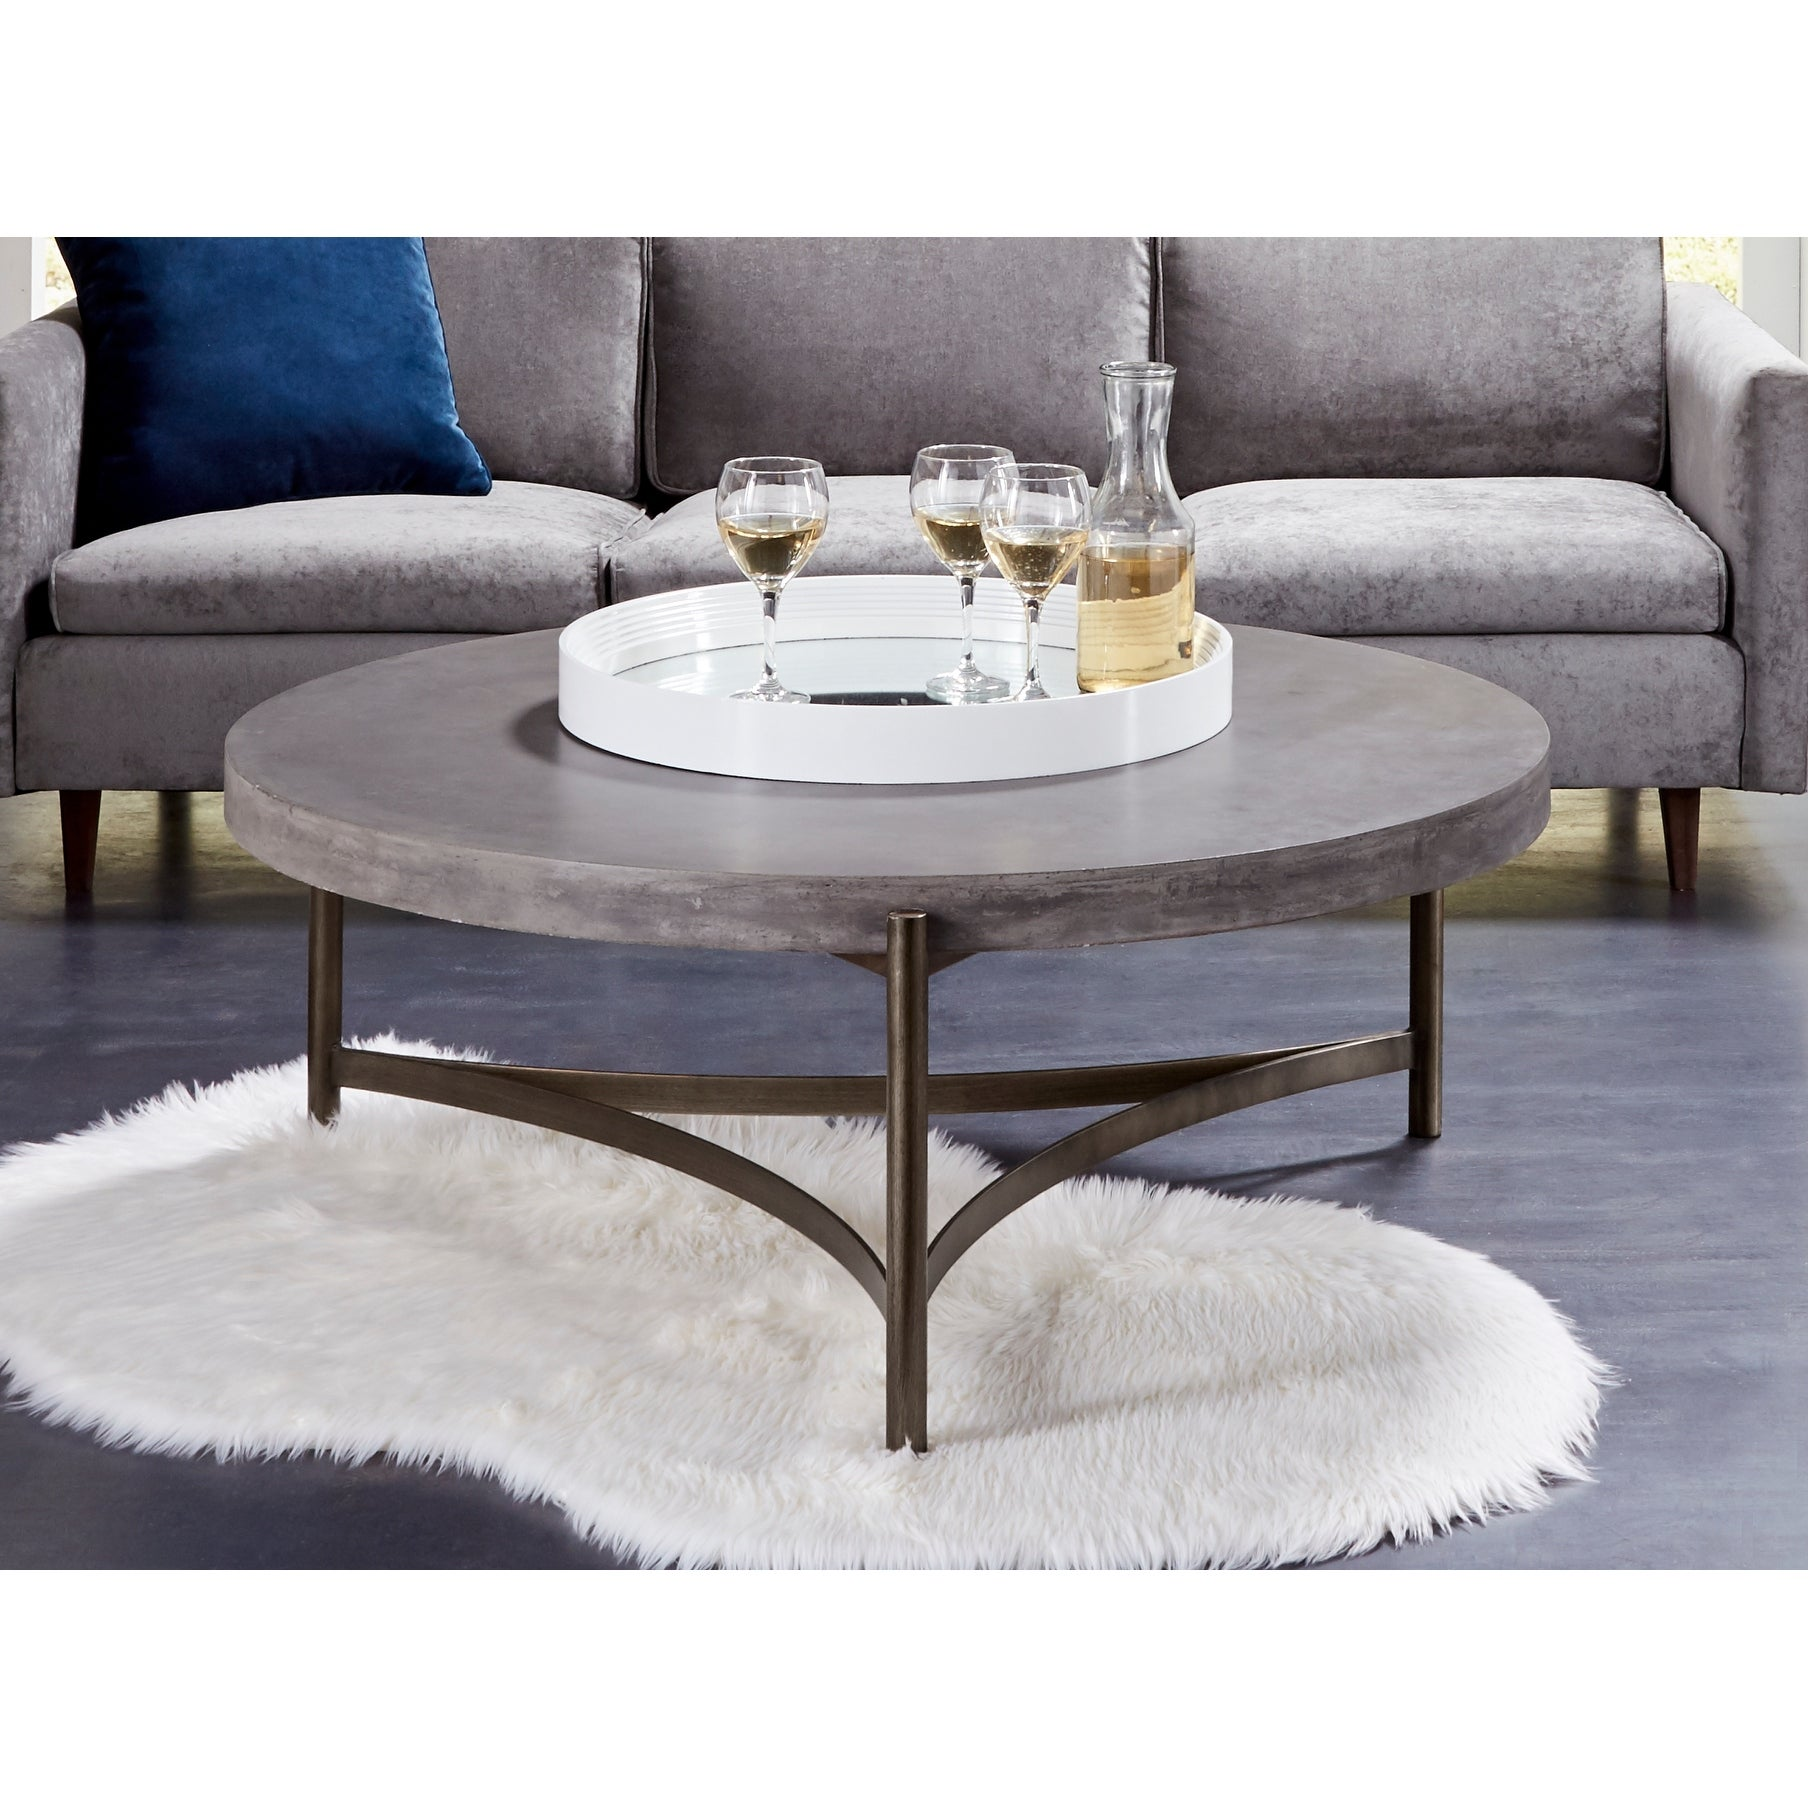 Lyon Round Concrete And Metal Coffee Table Overstock 31996399 [ 1808 x 1808 Pixel ]